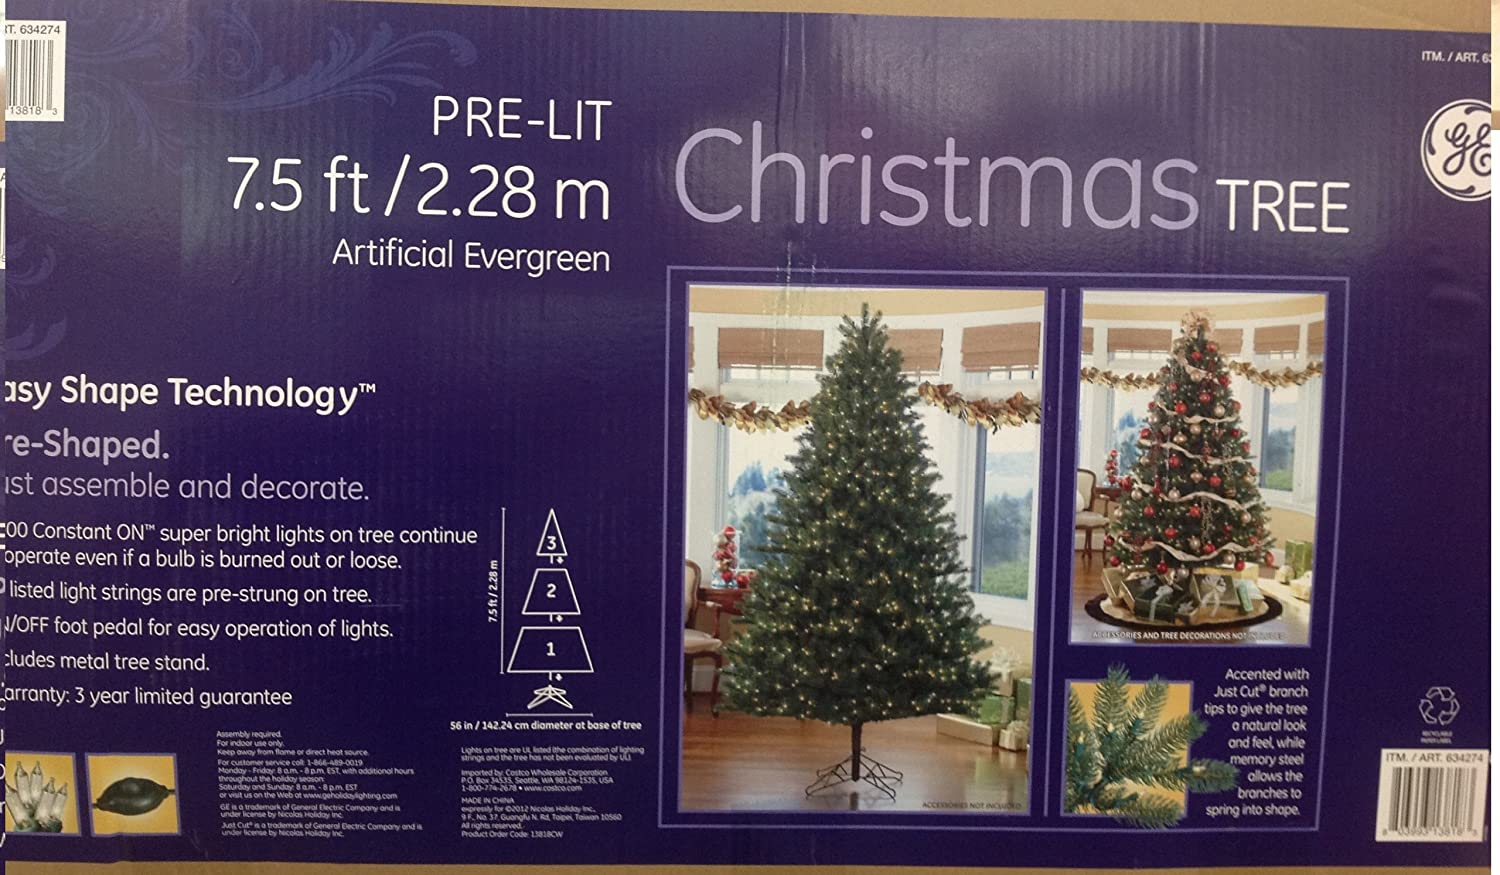 Amazon.com: Christmas Tree Pre Lit 7.5 Ft/2.28m Artifical Evergreen: Home U0026  Kitchen